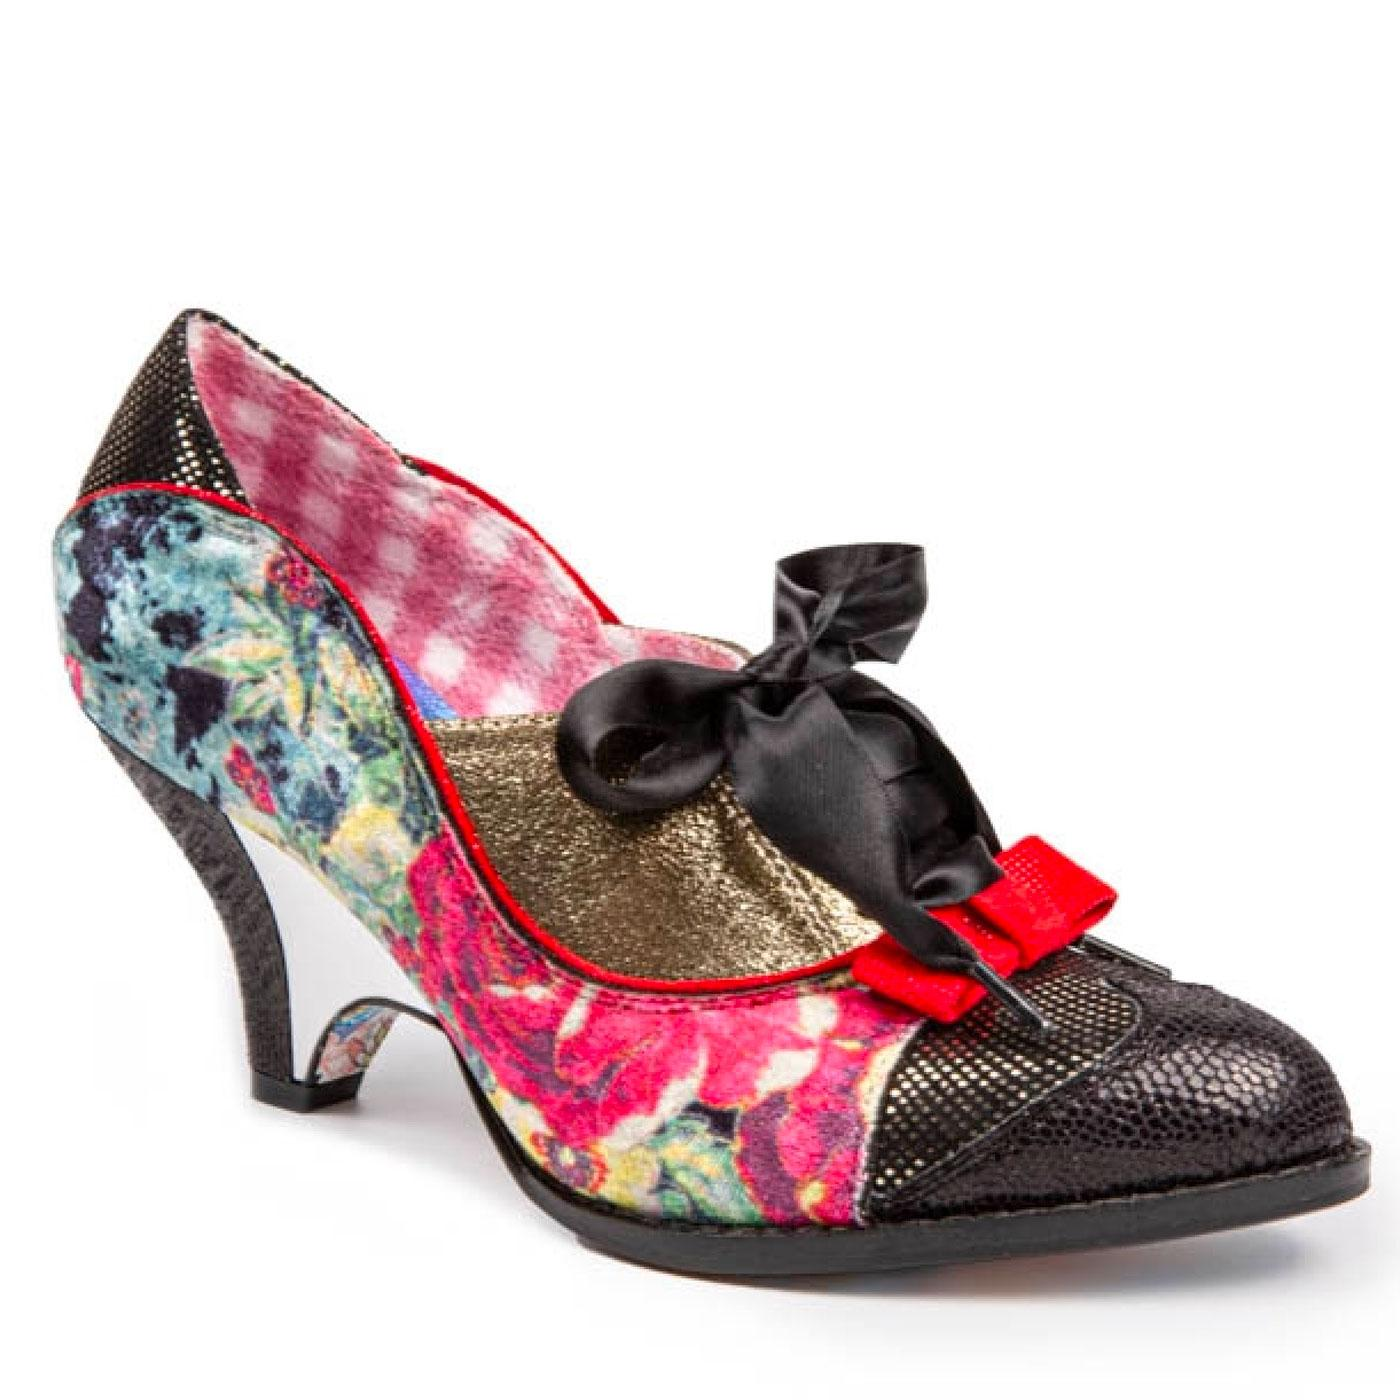 Force of Beauty IRREGULAR CHOICE Retro Heels